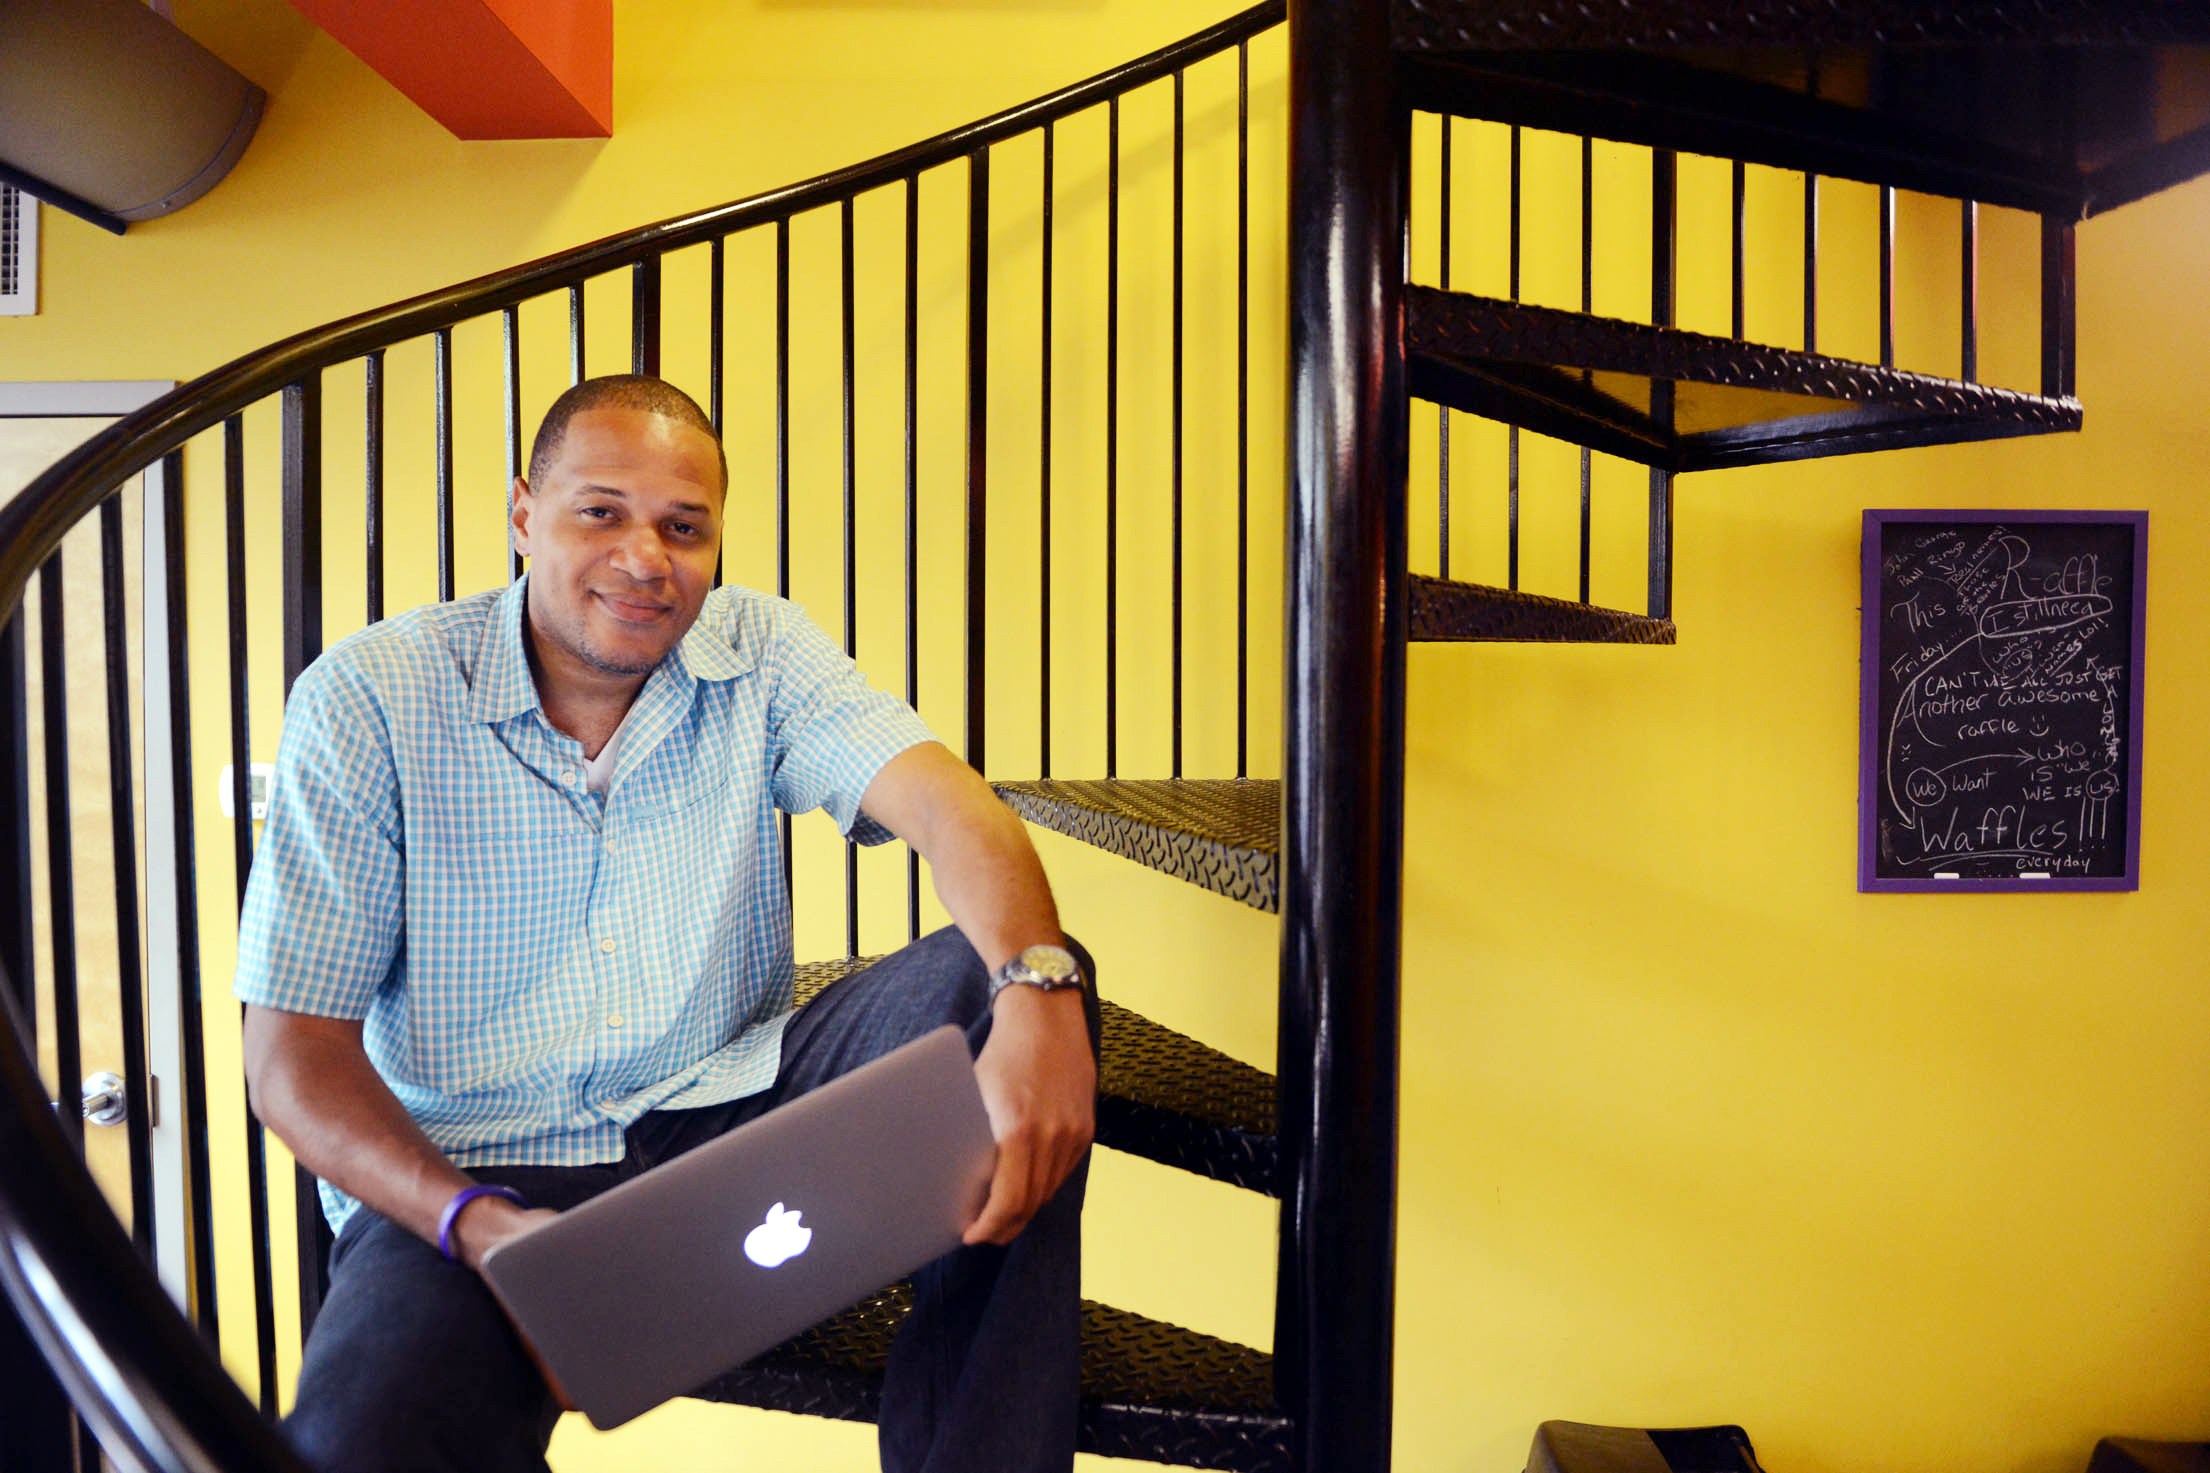 Recruiting software pany The Resumator works to open